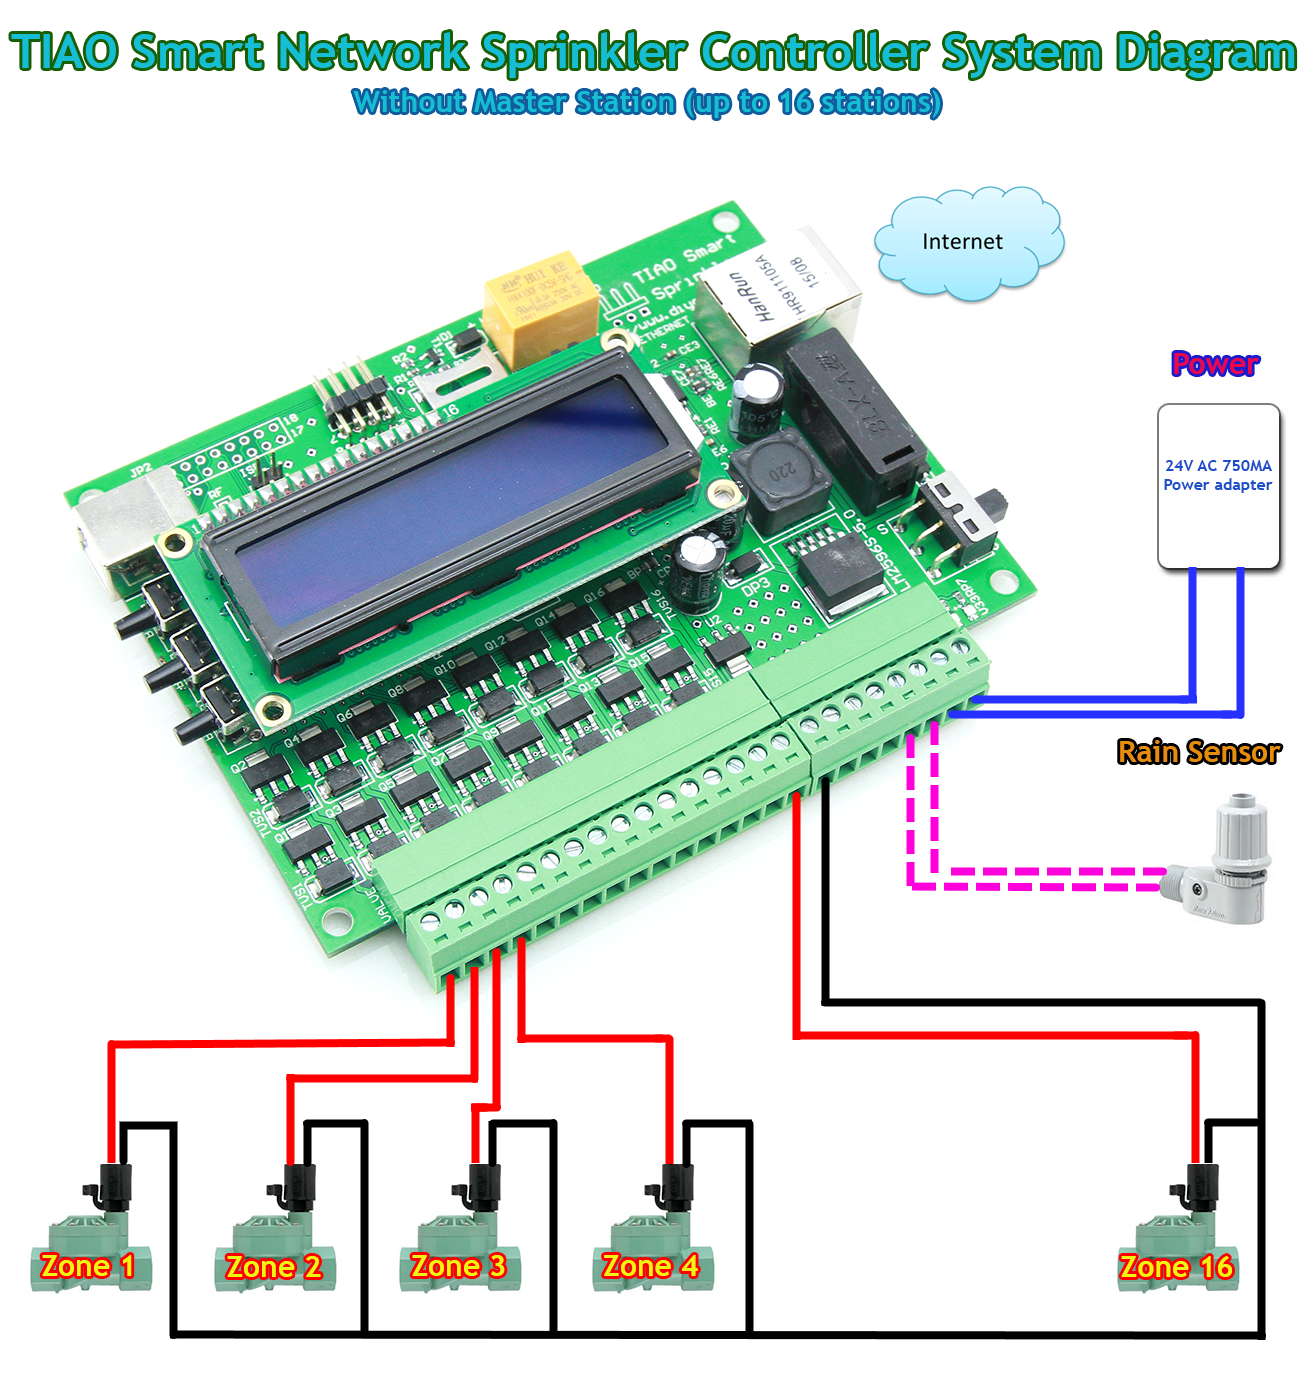 TSS-Without-Master-Station Network Connection Diagram on sn74ls27, tong sheng vlcd6, 59sc5a, generator load bank, tankless ro system, hk42fz013, mini apprentice, isolation transformer,